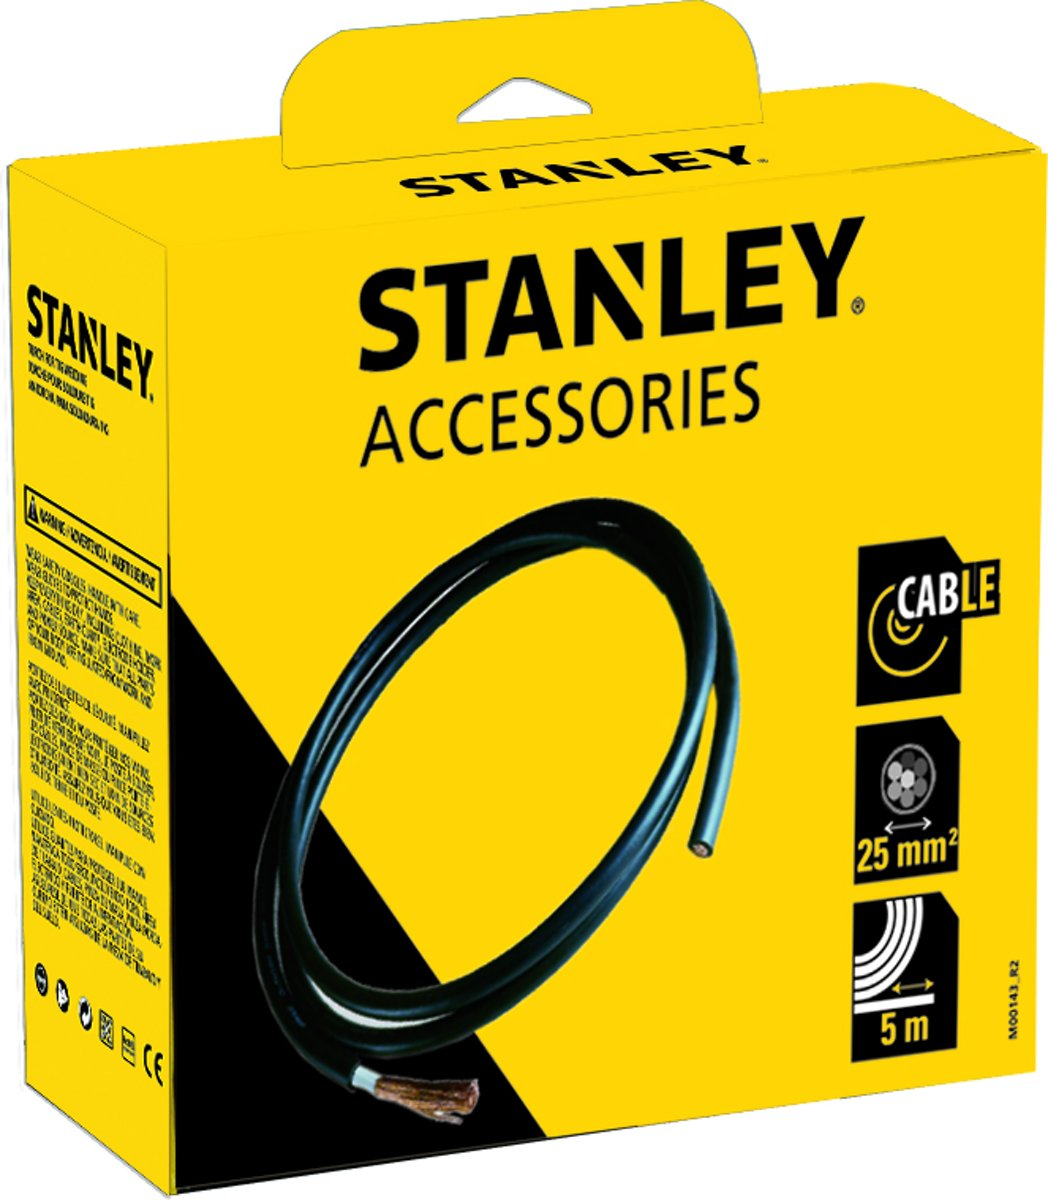 STANLEY Laskabels - 5m x 25mm²